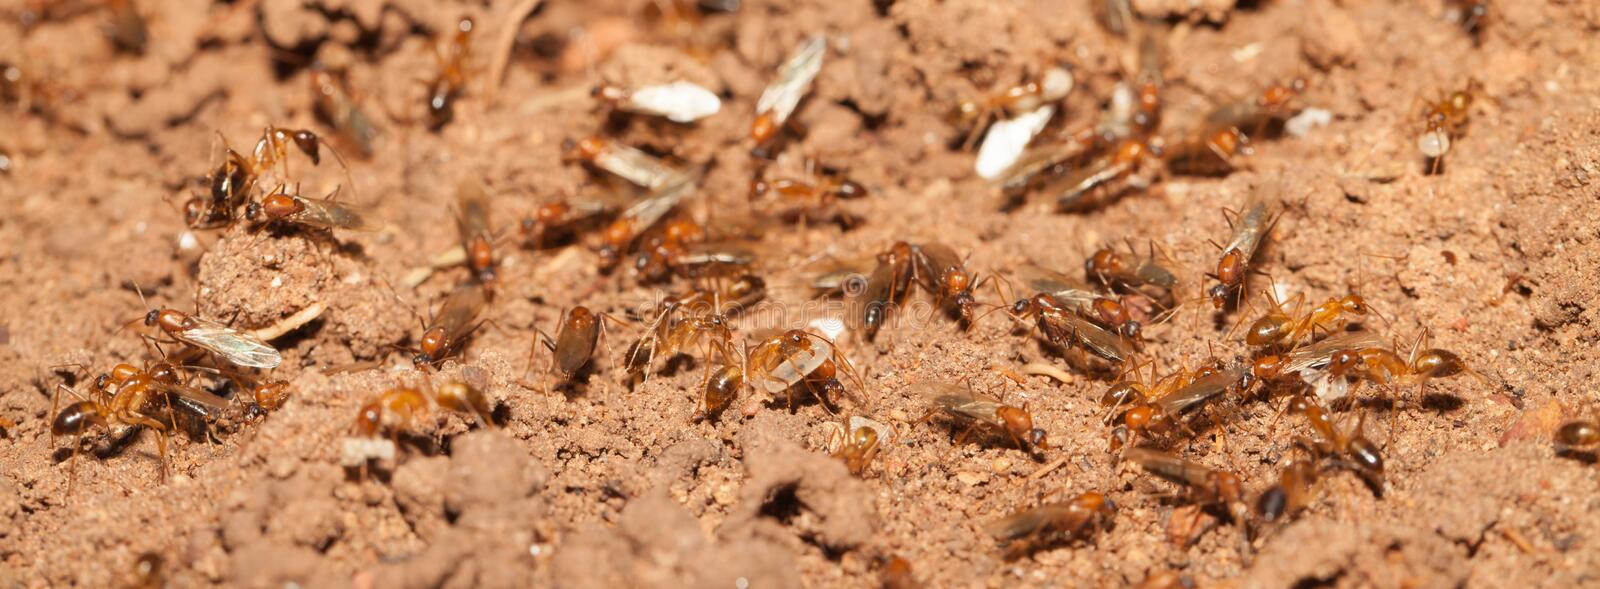 Ant teamwork royalty free stock photography